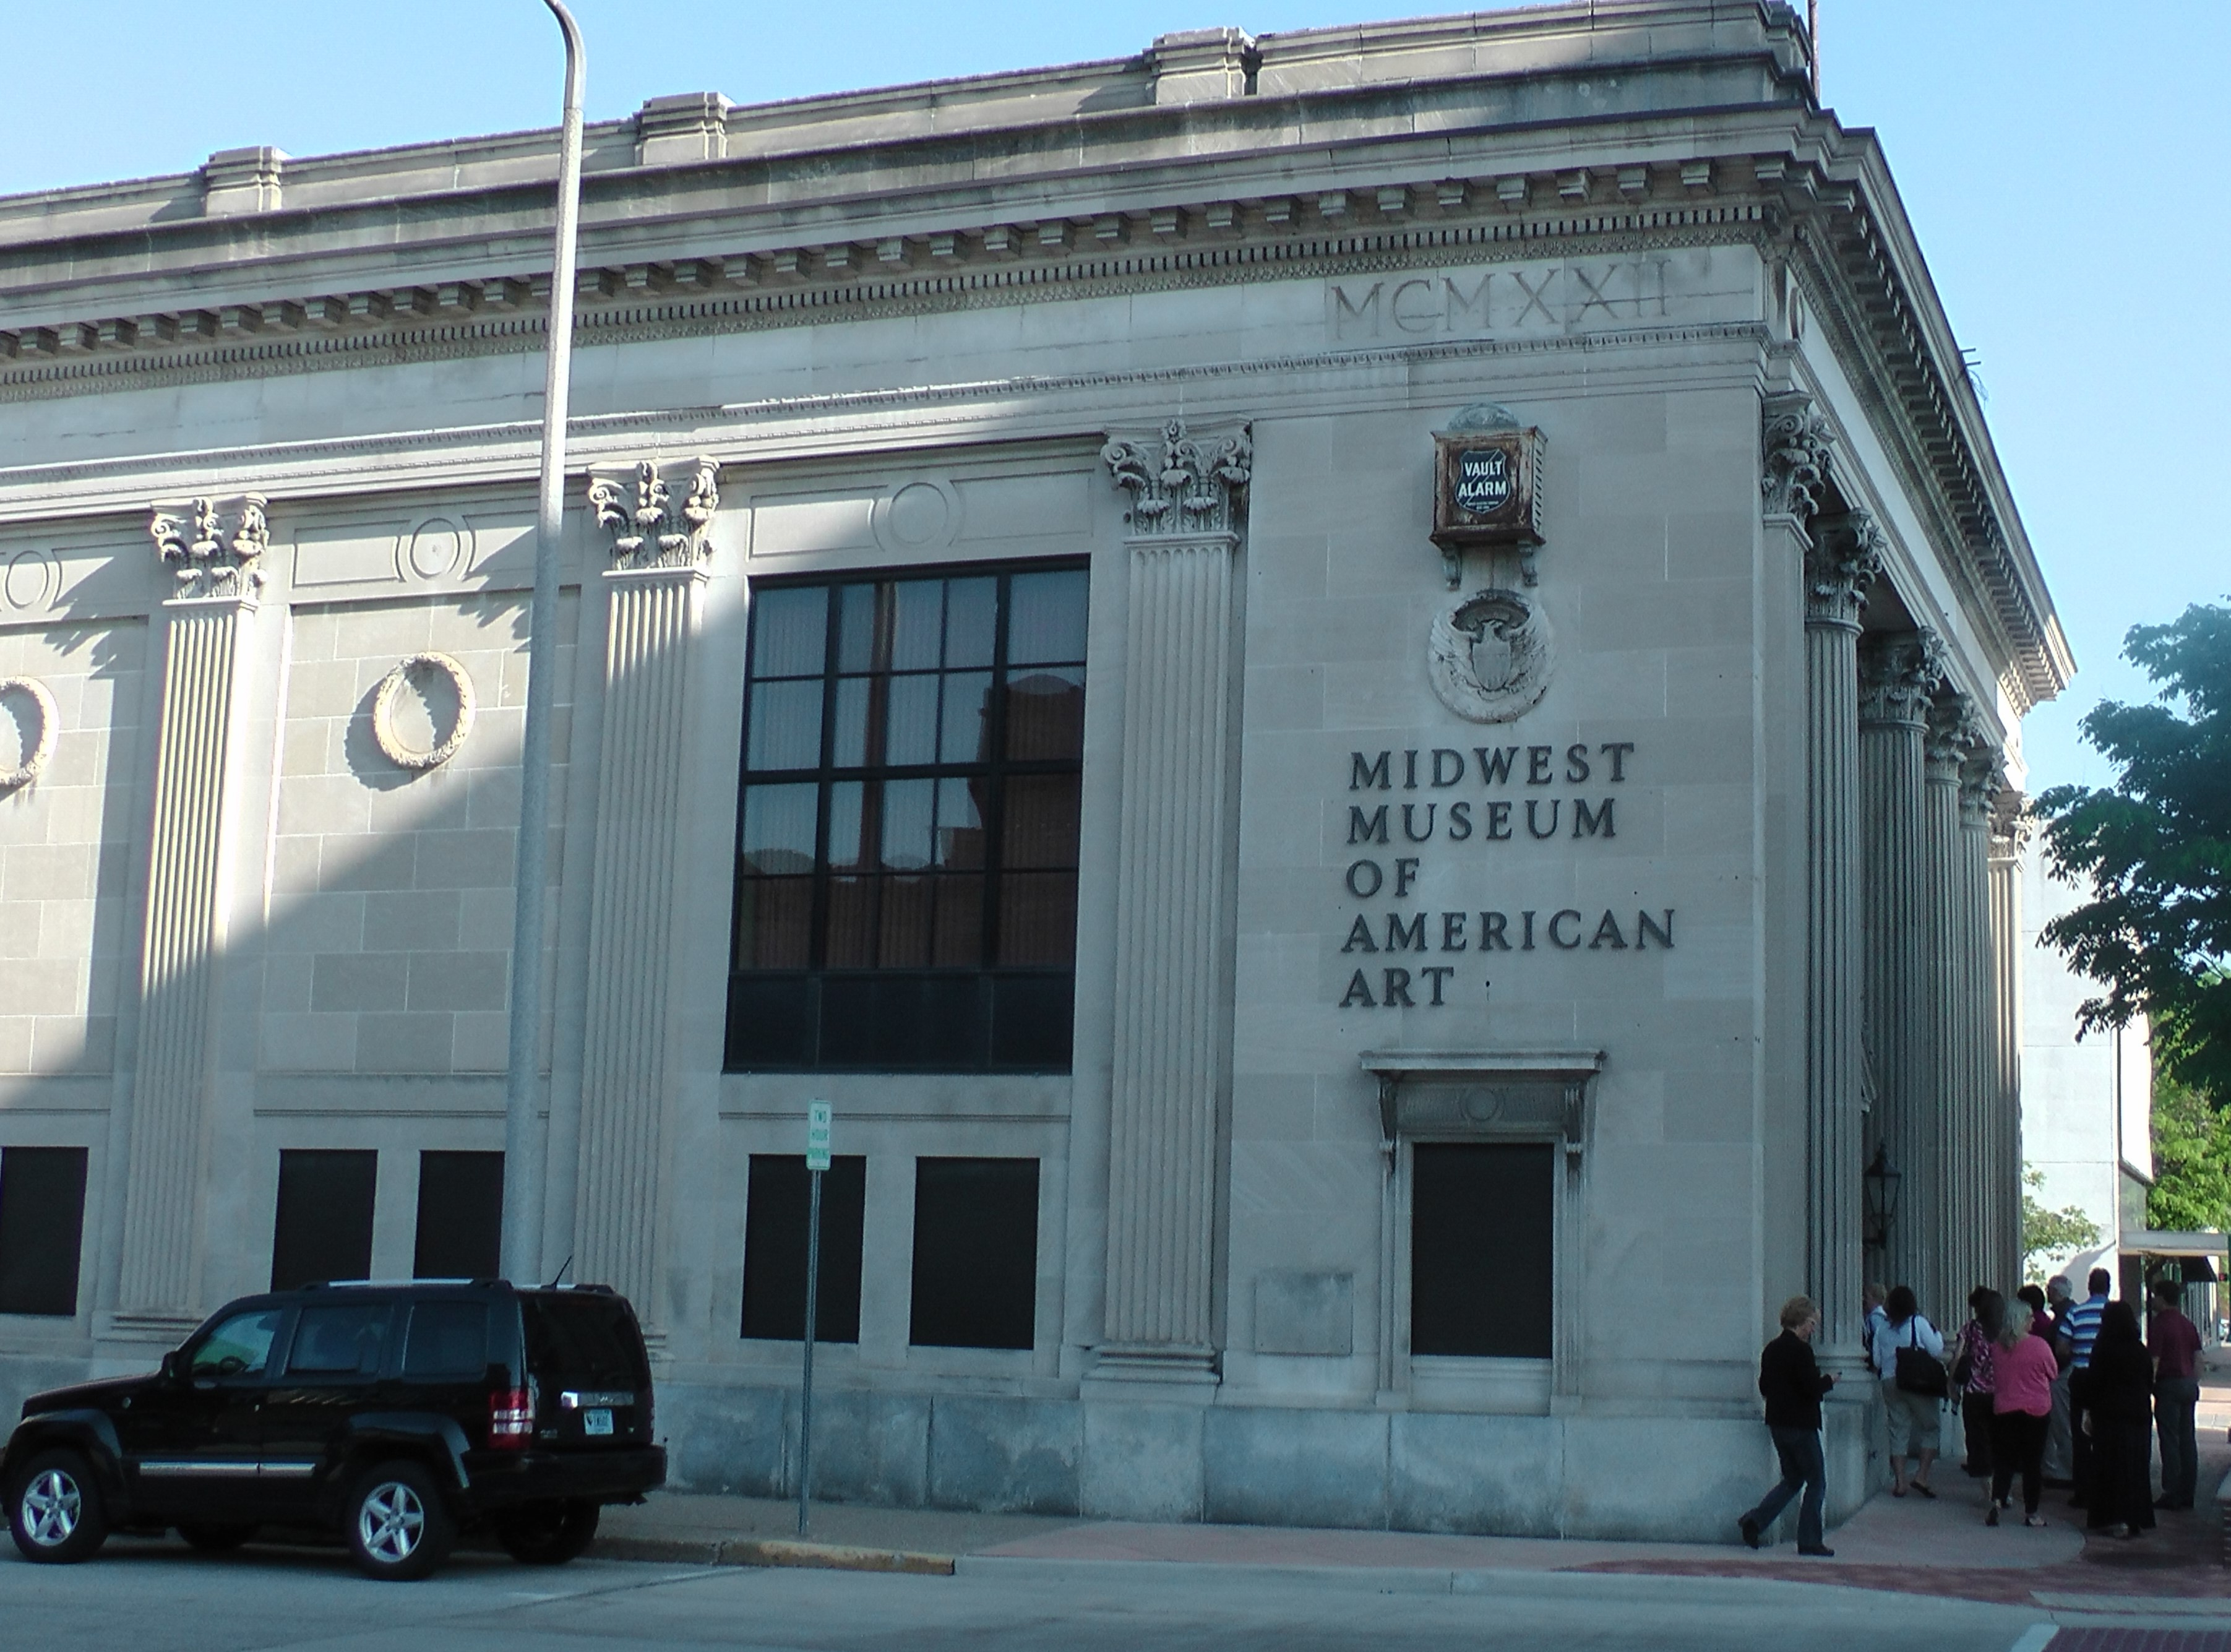 Former bank building now home to the Midwestern Museum of American Art.